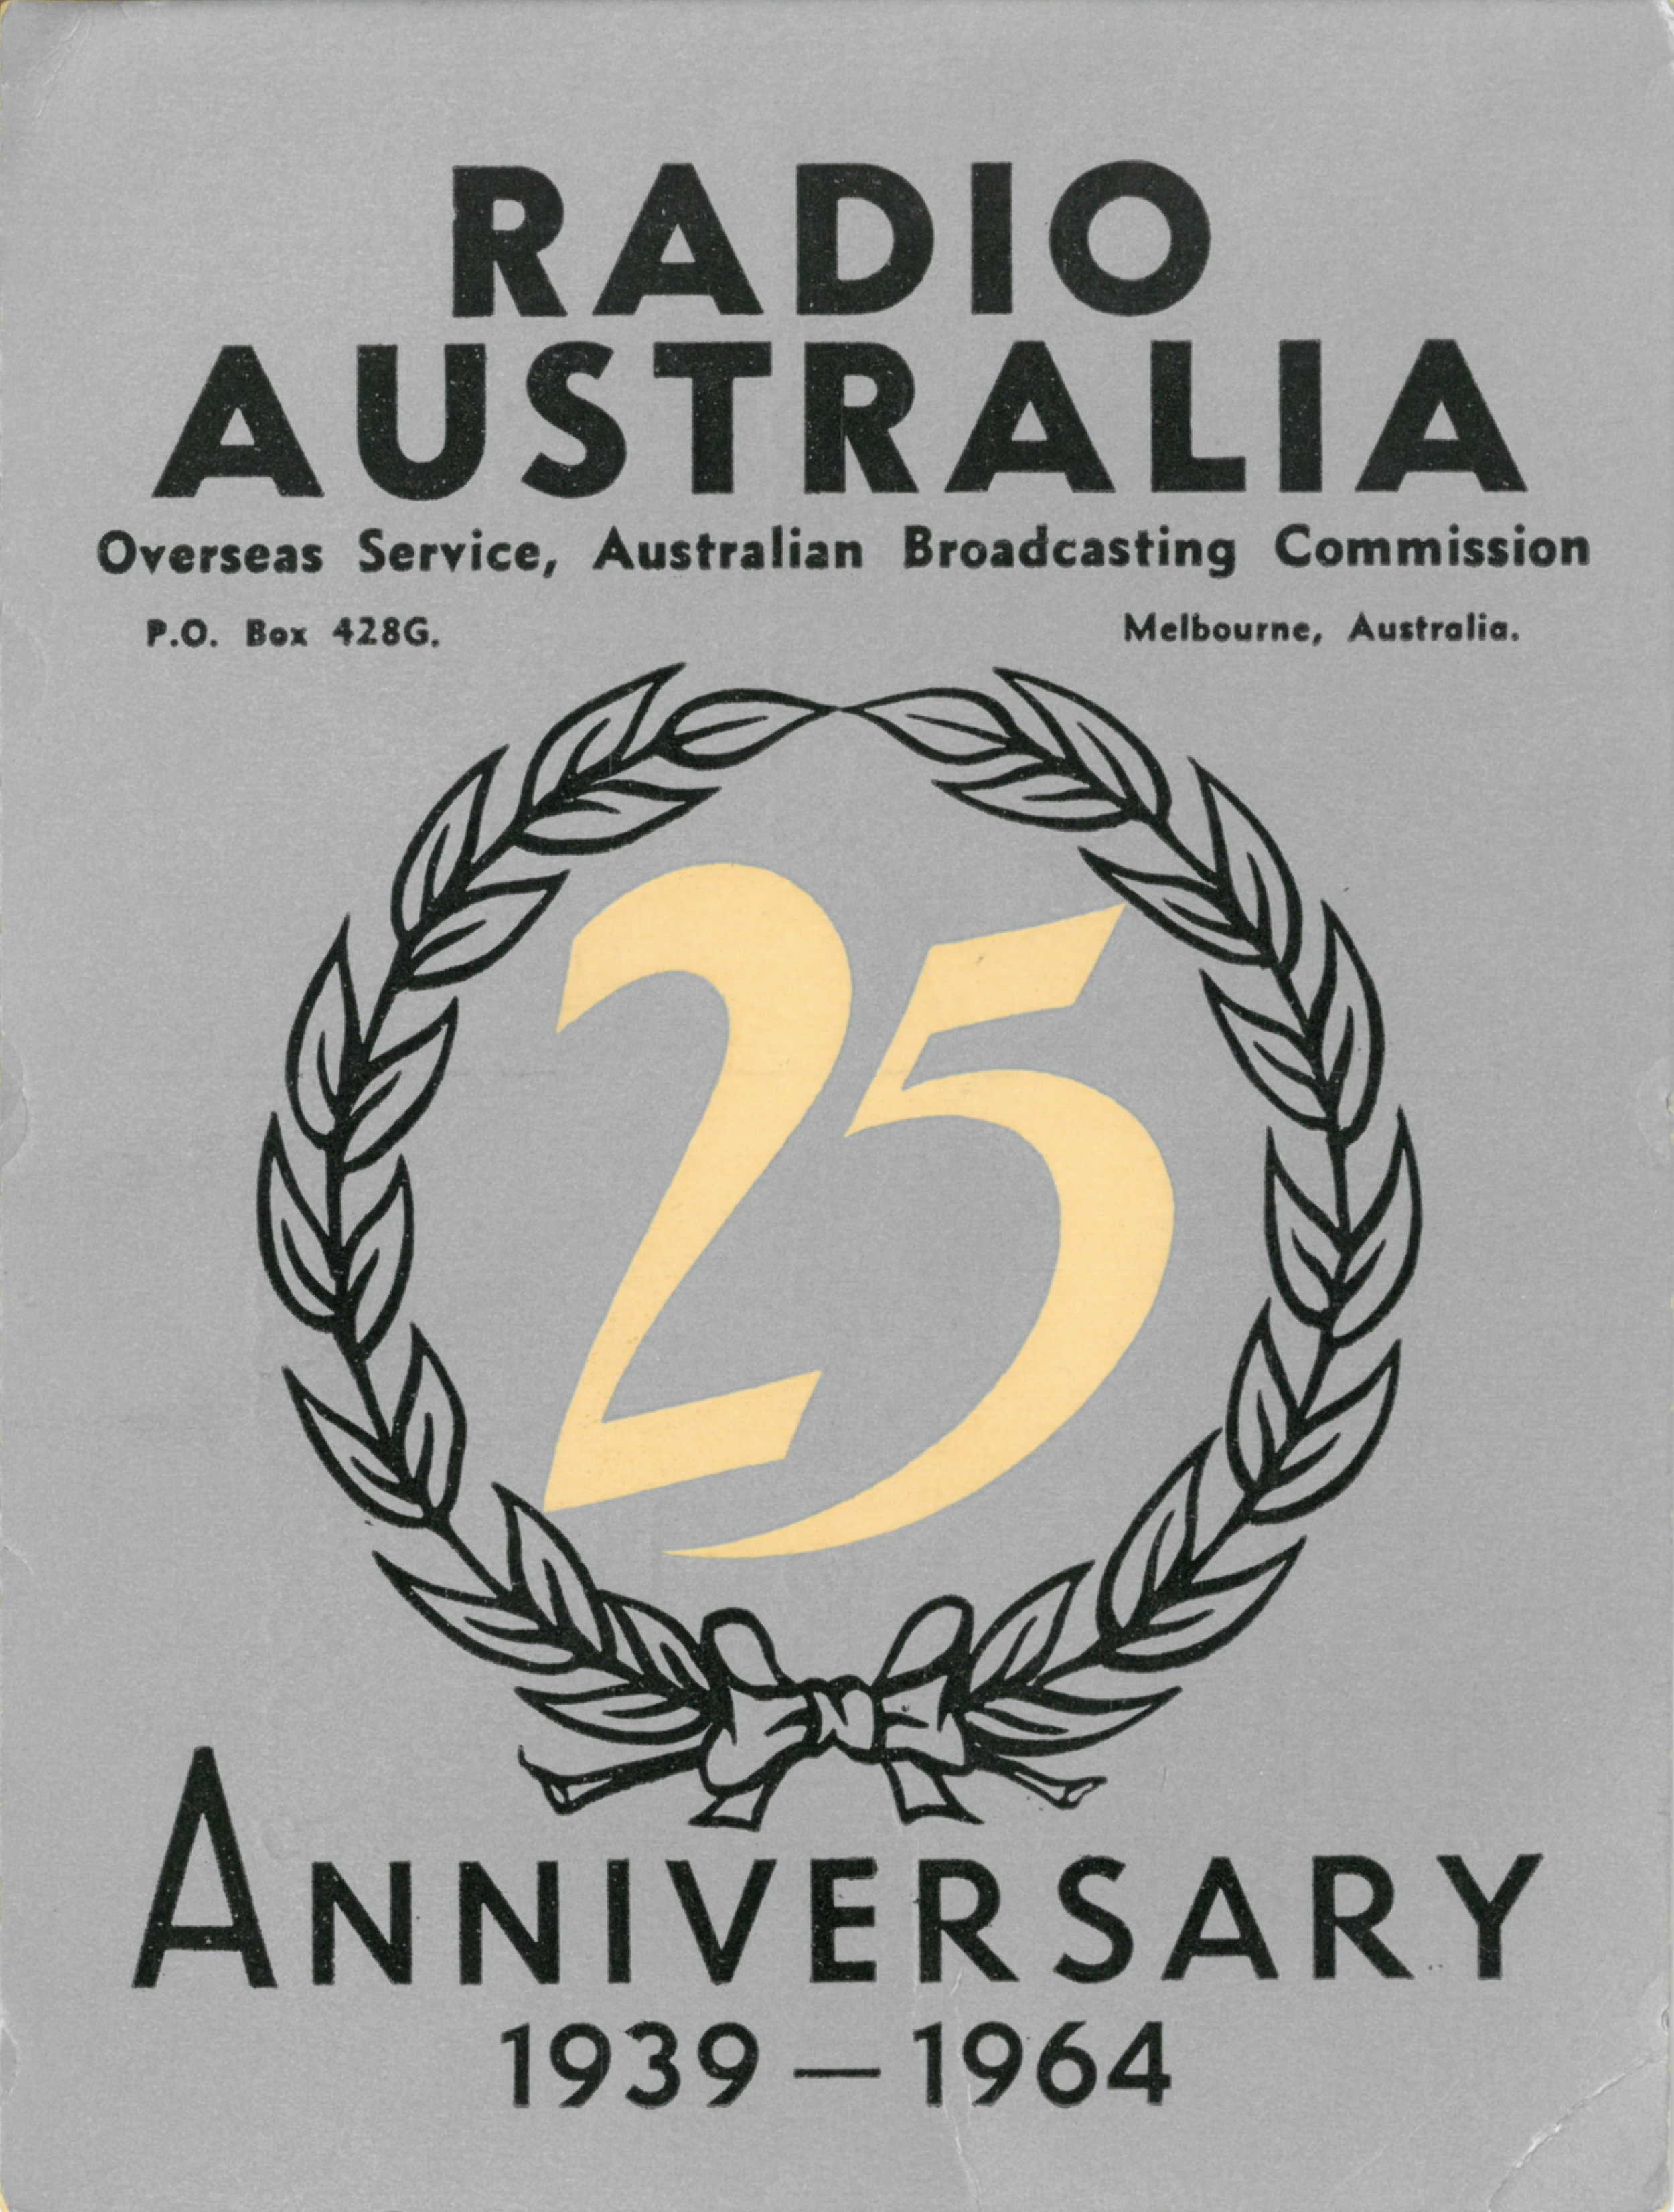 The front of a Radio Australia QSL card received for a report on reception in Toronto of a transmission on 11840 kHz at 19:30 UTC on 23 December 1964.